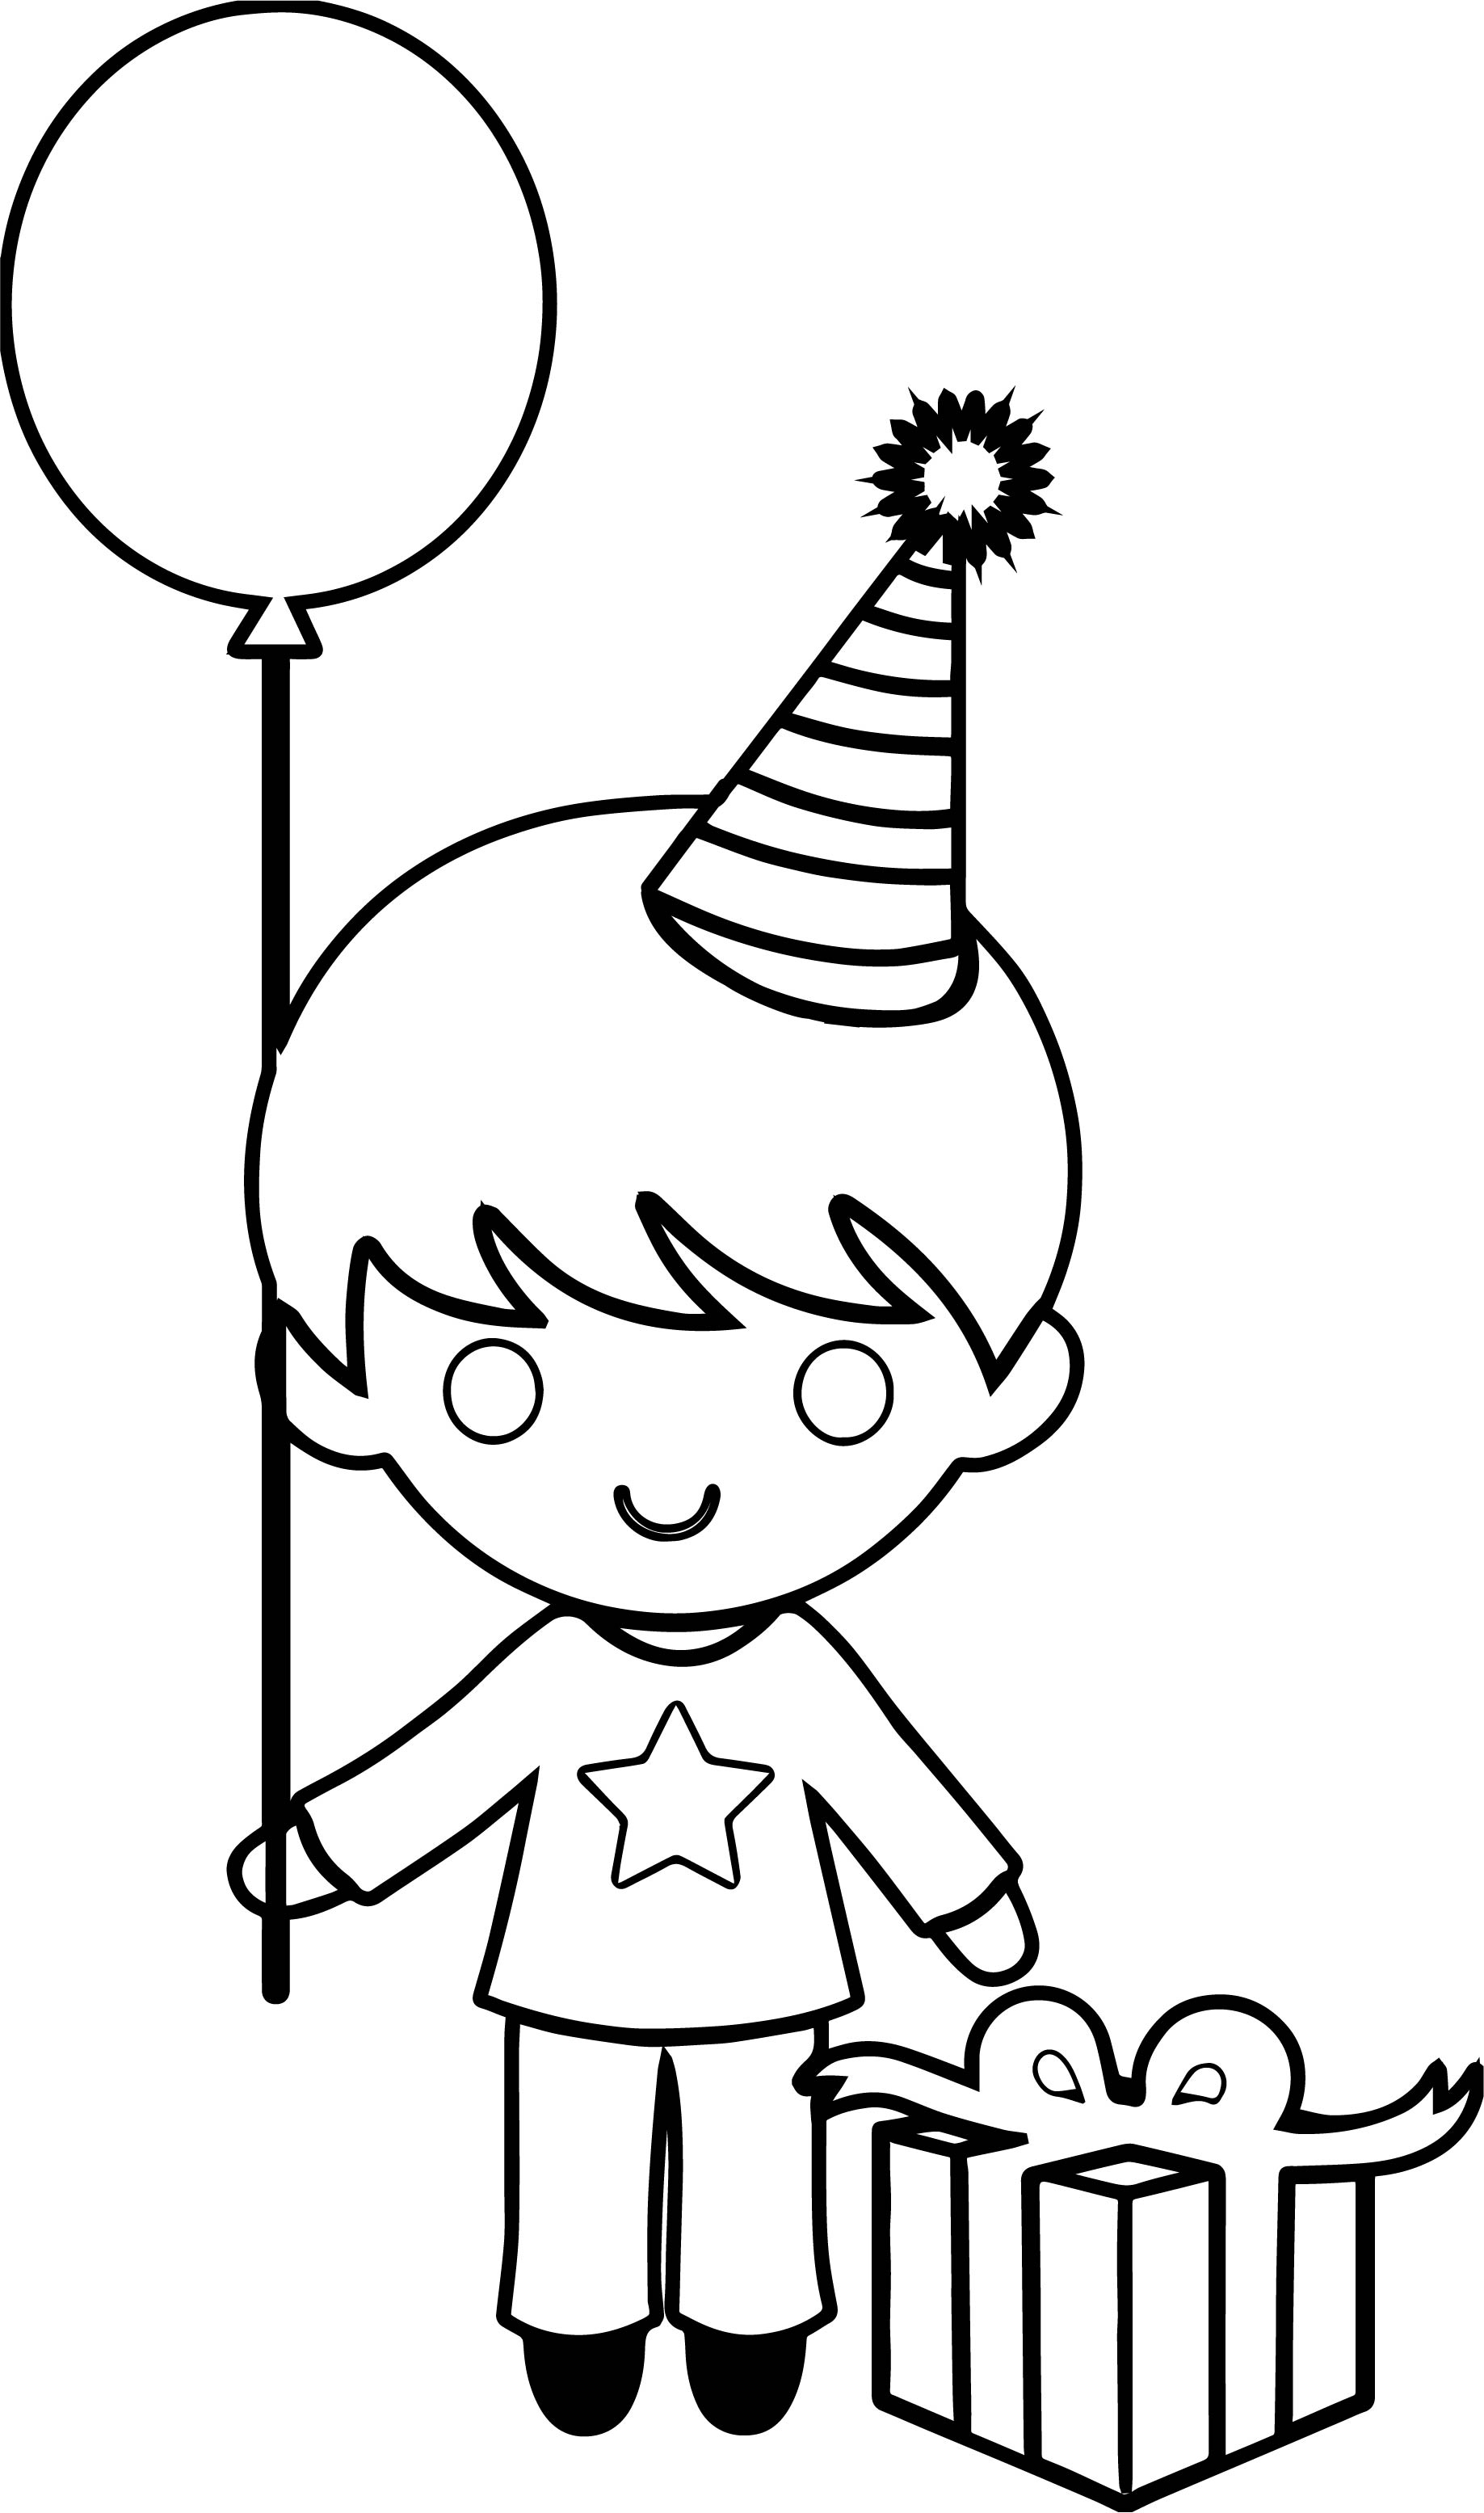 Party Birthday Boy Coloring Page